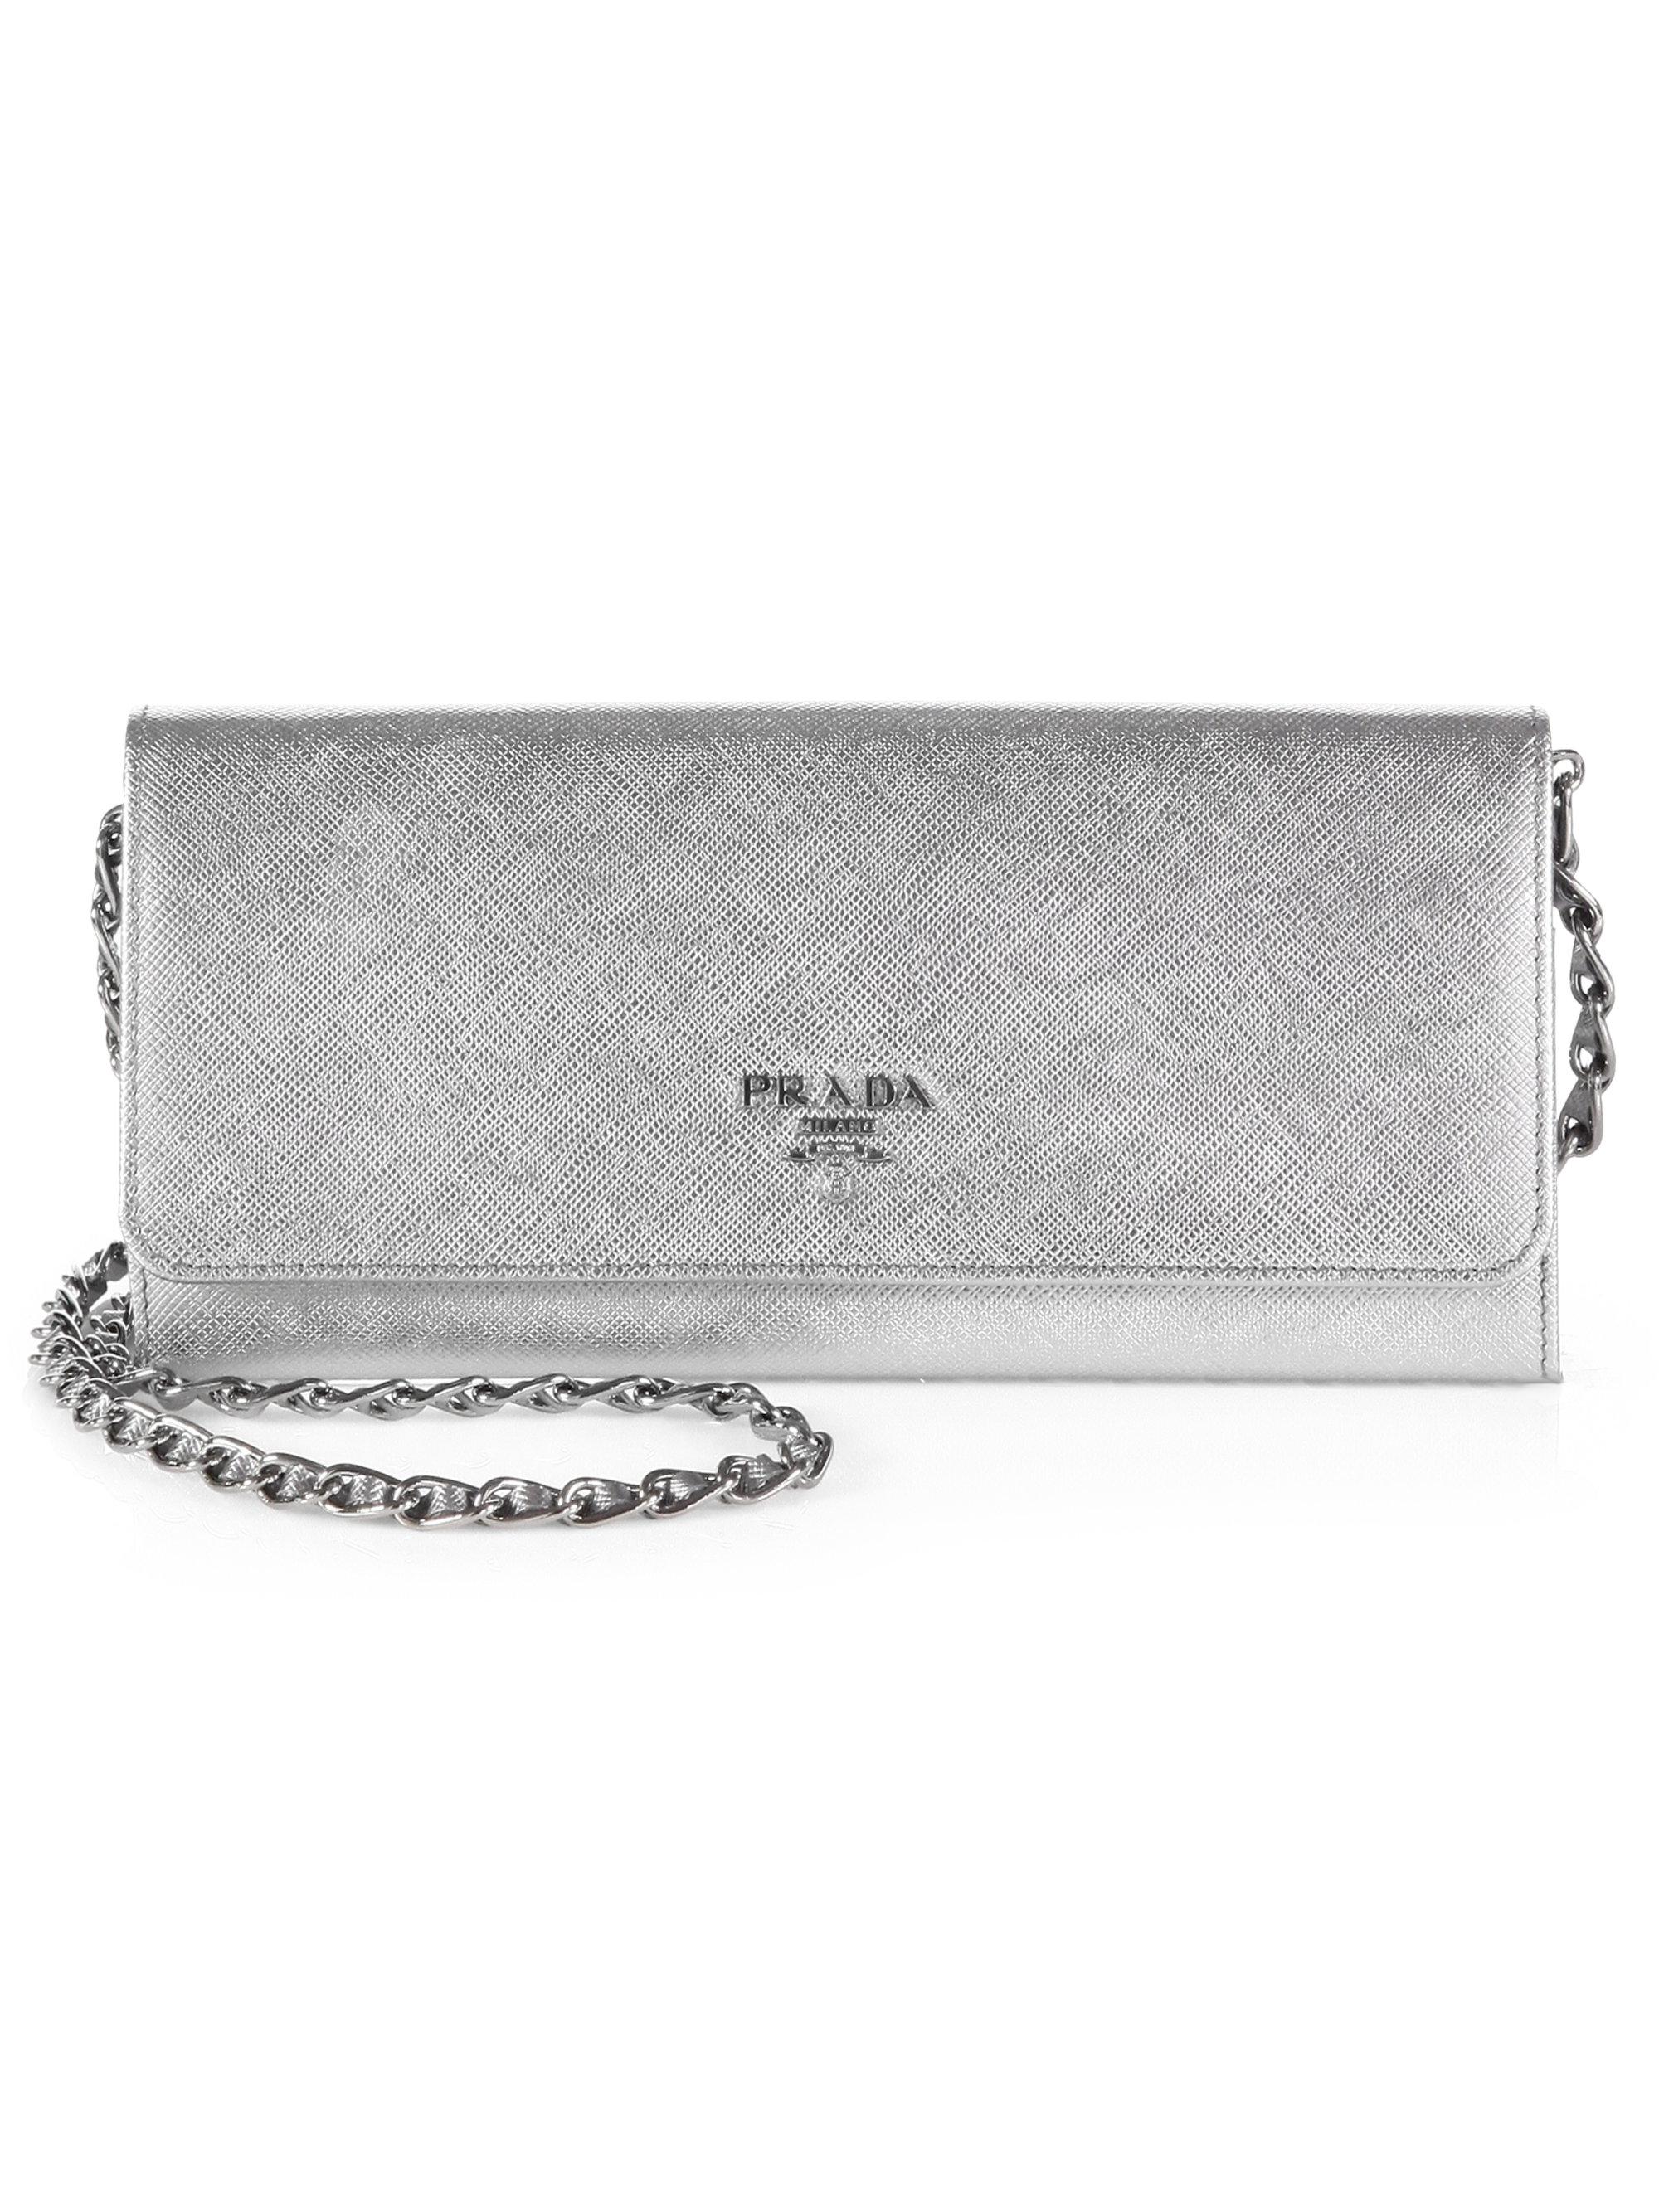 Prada Saffiano Metal Oro Wallet with Chain in Silver (platino ...